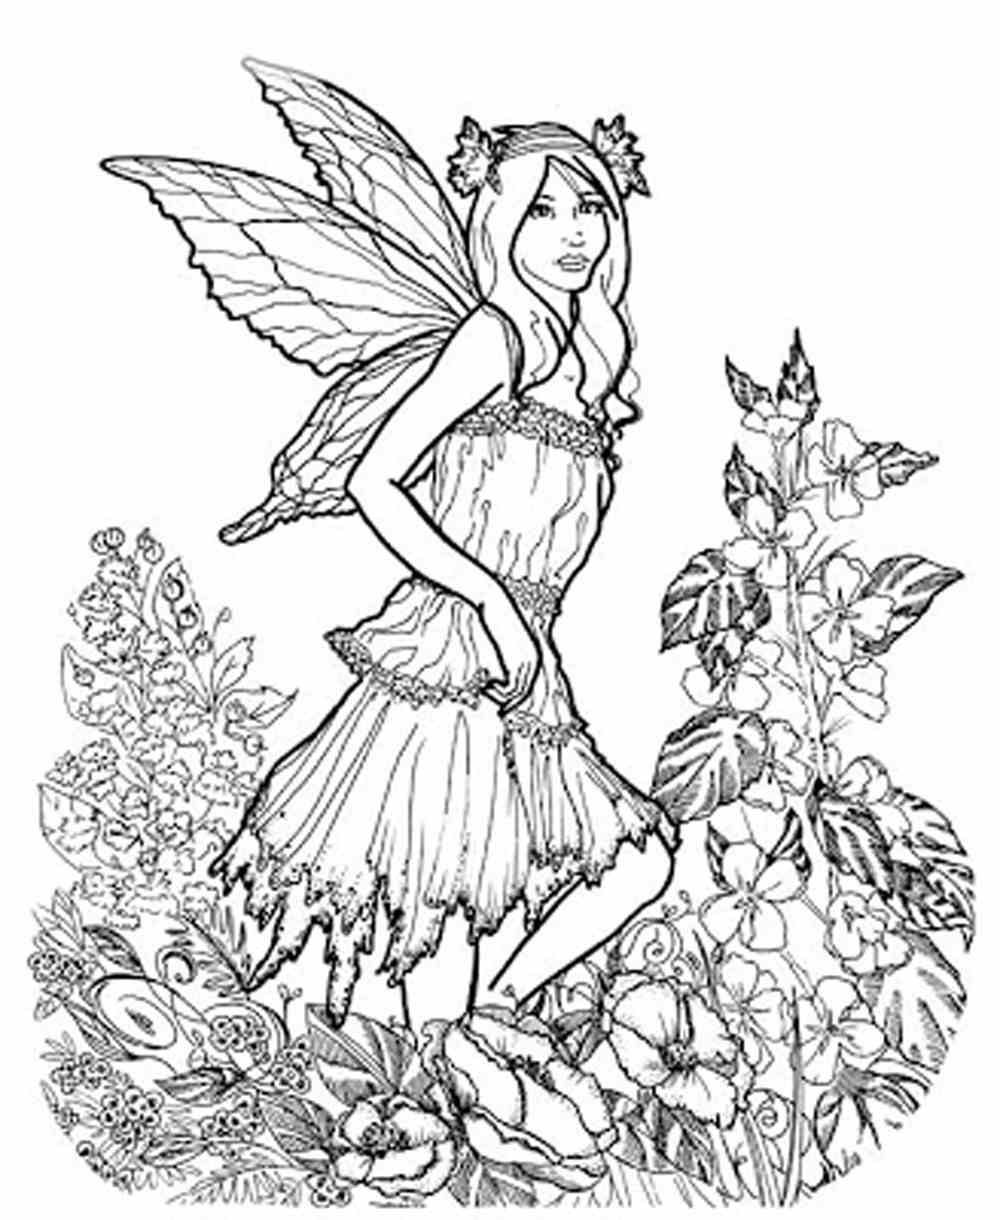 detailed beautiful fairy coloring pages detailed fairy coloring pages for adults coloring pages pages beautiful detailed coloring fairy